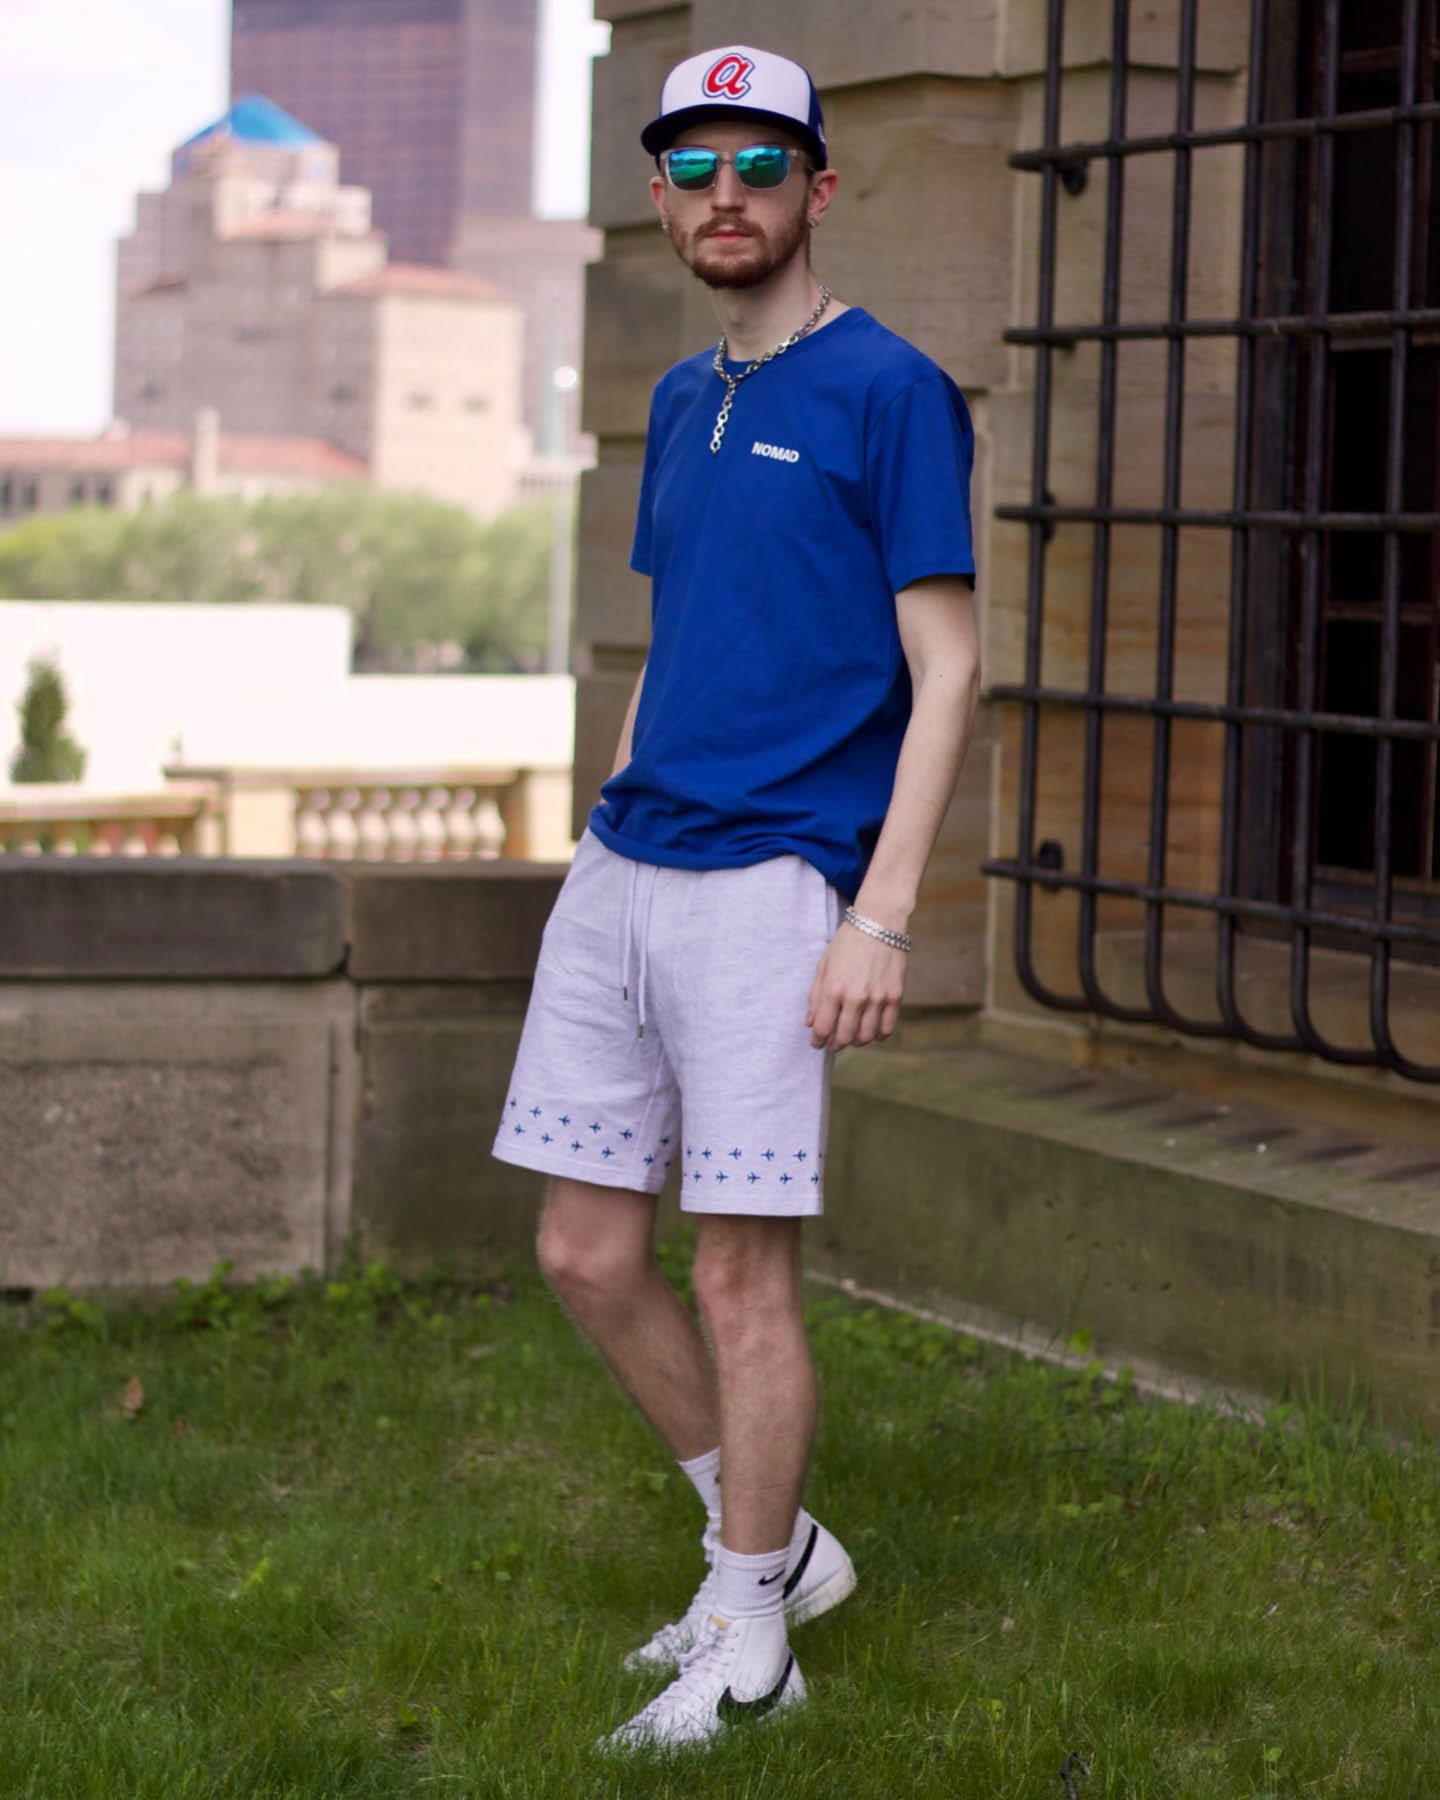 Aaron Seelig wearing The World Is Yours shirt from the Nomad Creative Works Spring 2021 collection at the Dayton Art Institute, Walking sunset View.